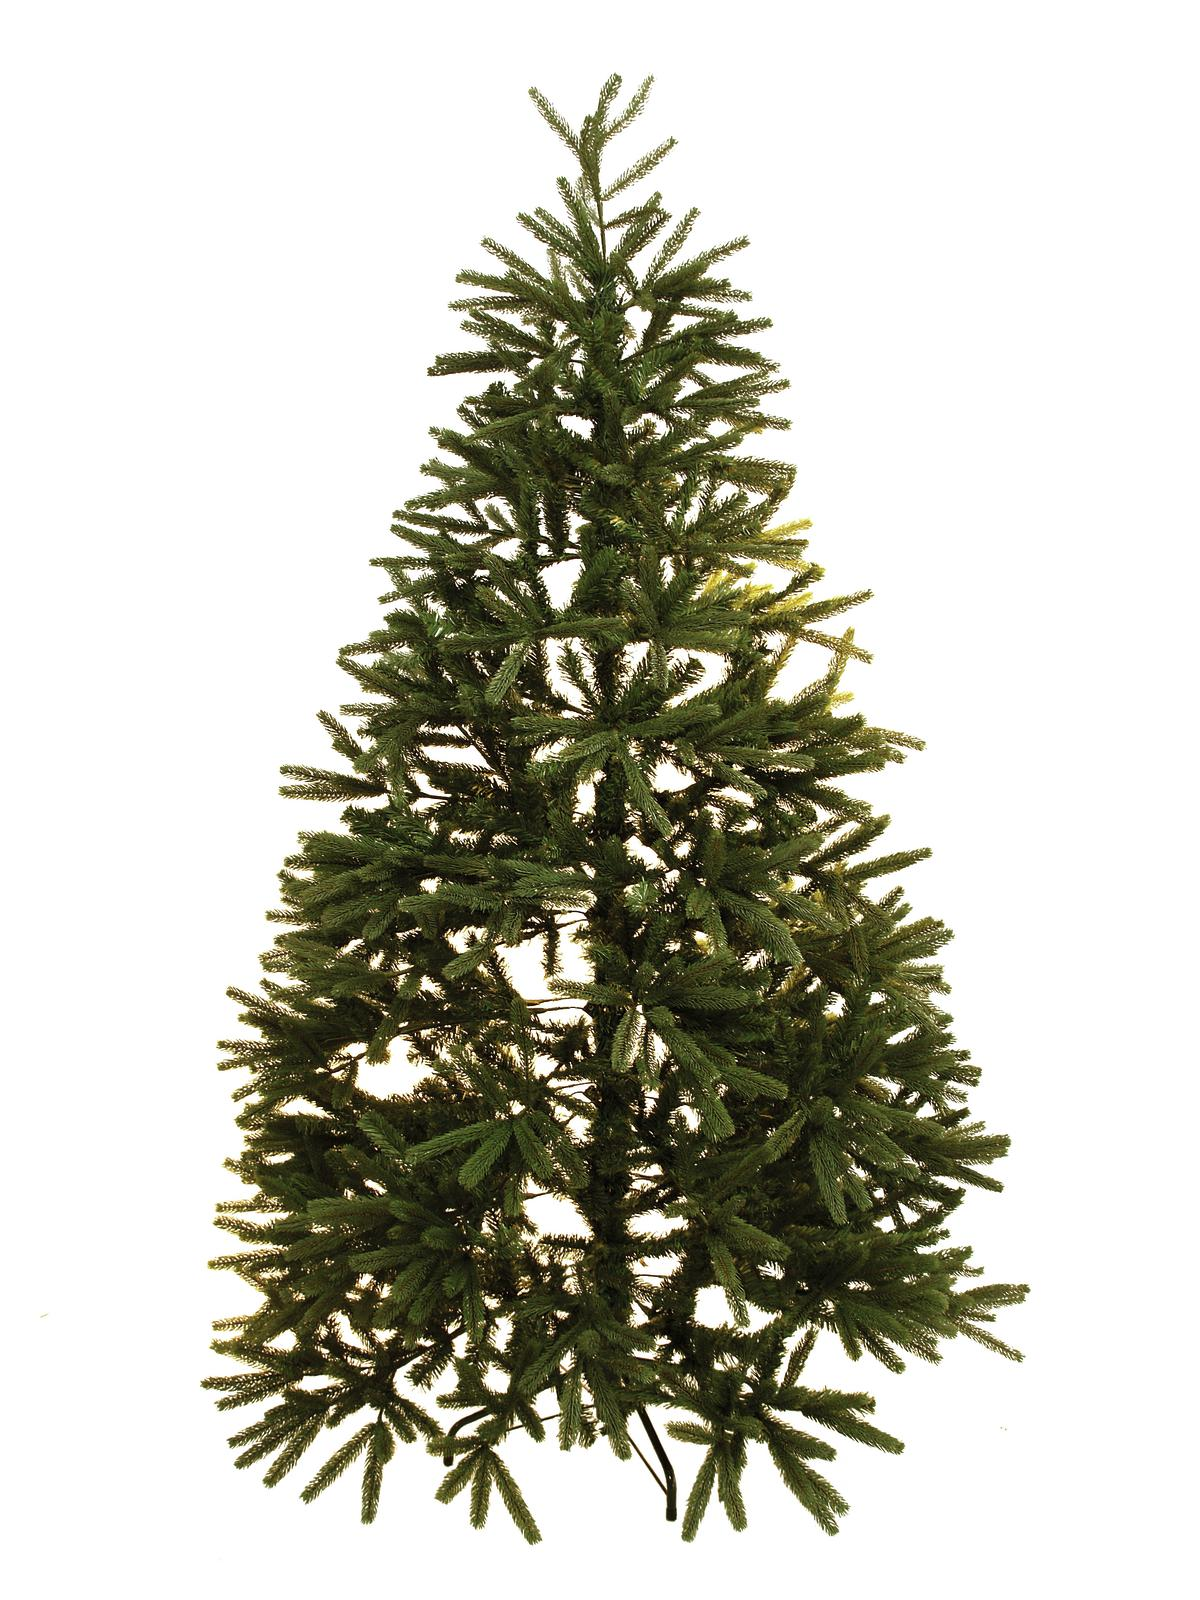 EUROPALMS PE/PVC christmastree